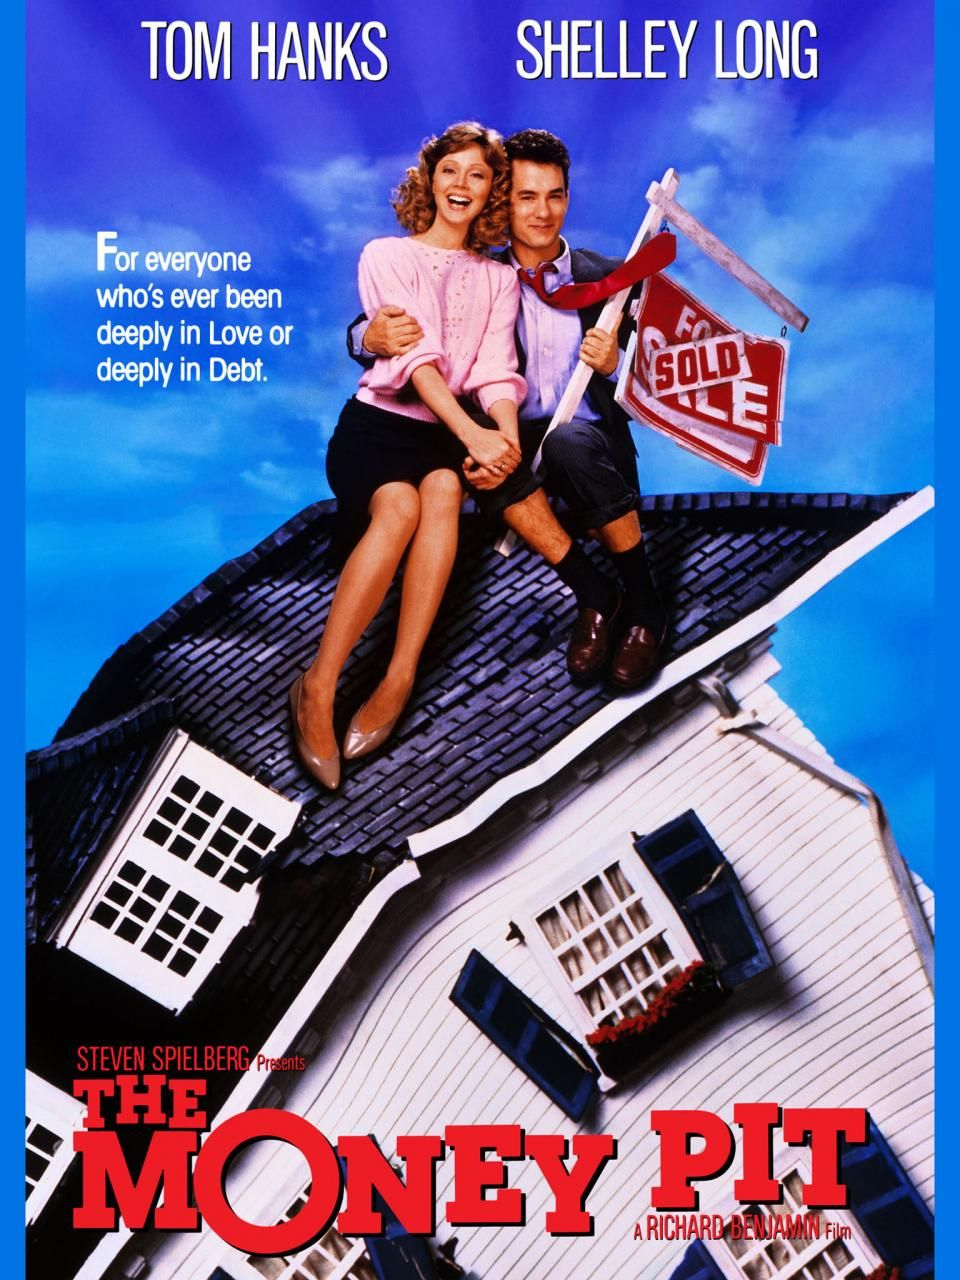 The Money Pit with Tom Hanks and Shelley Long